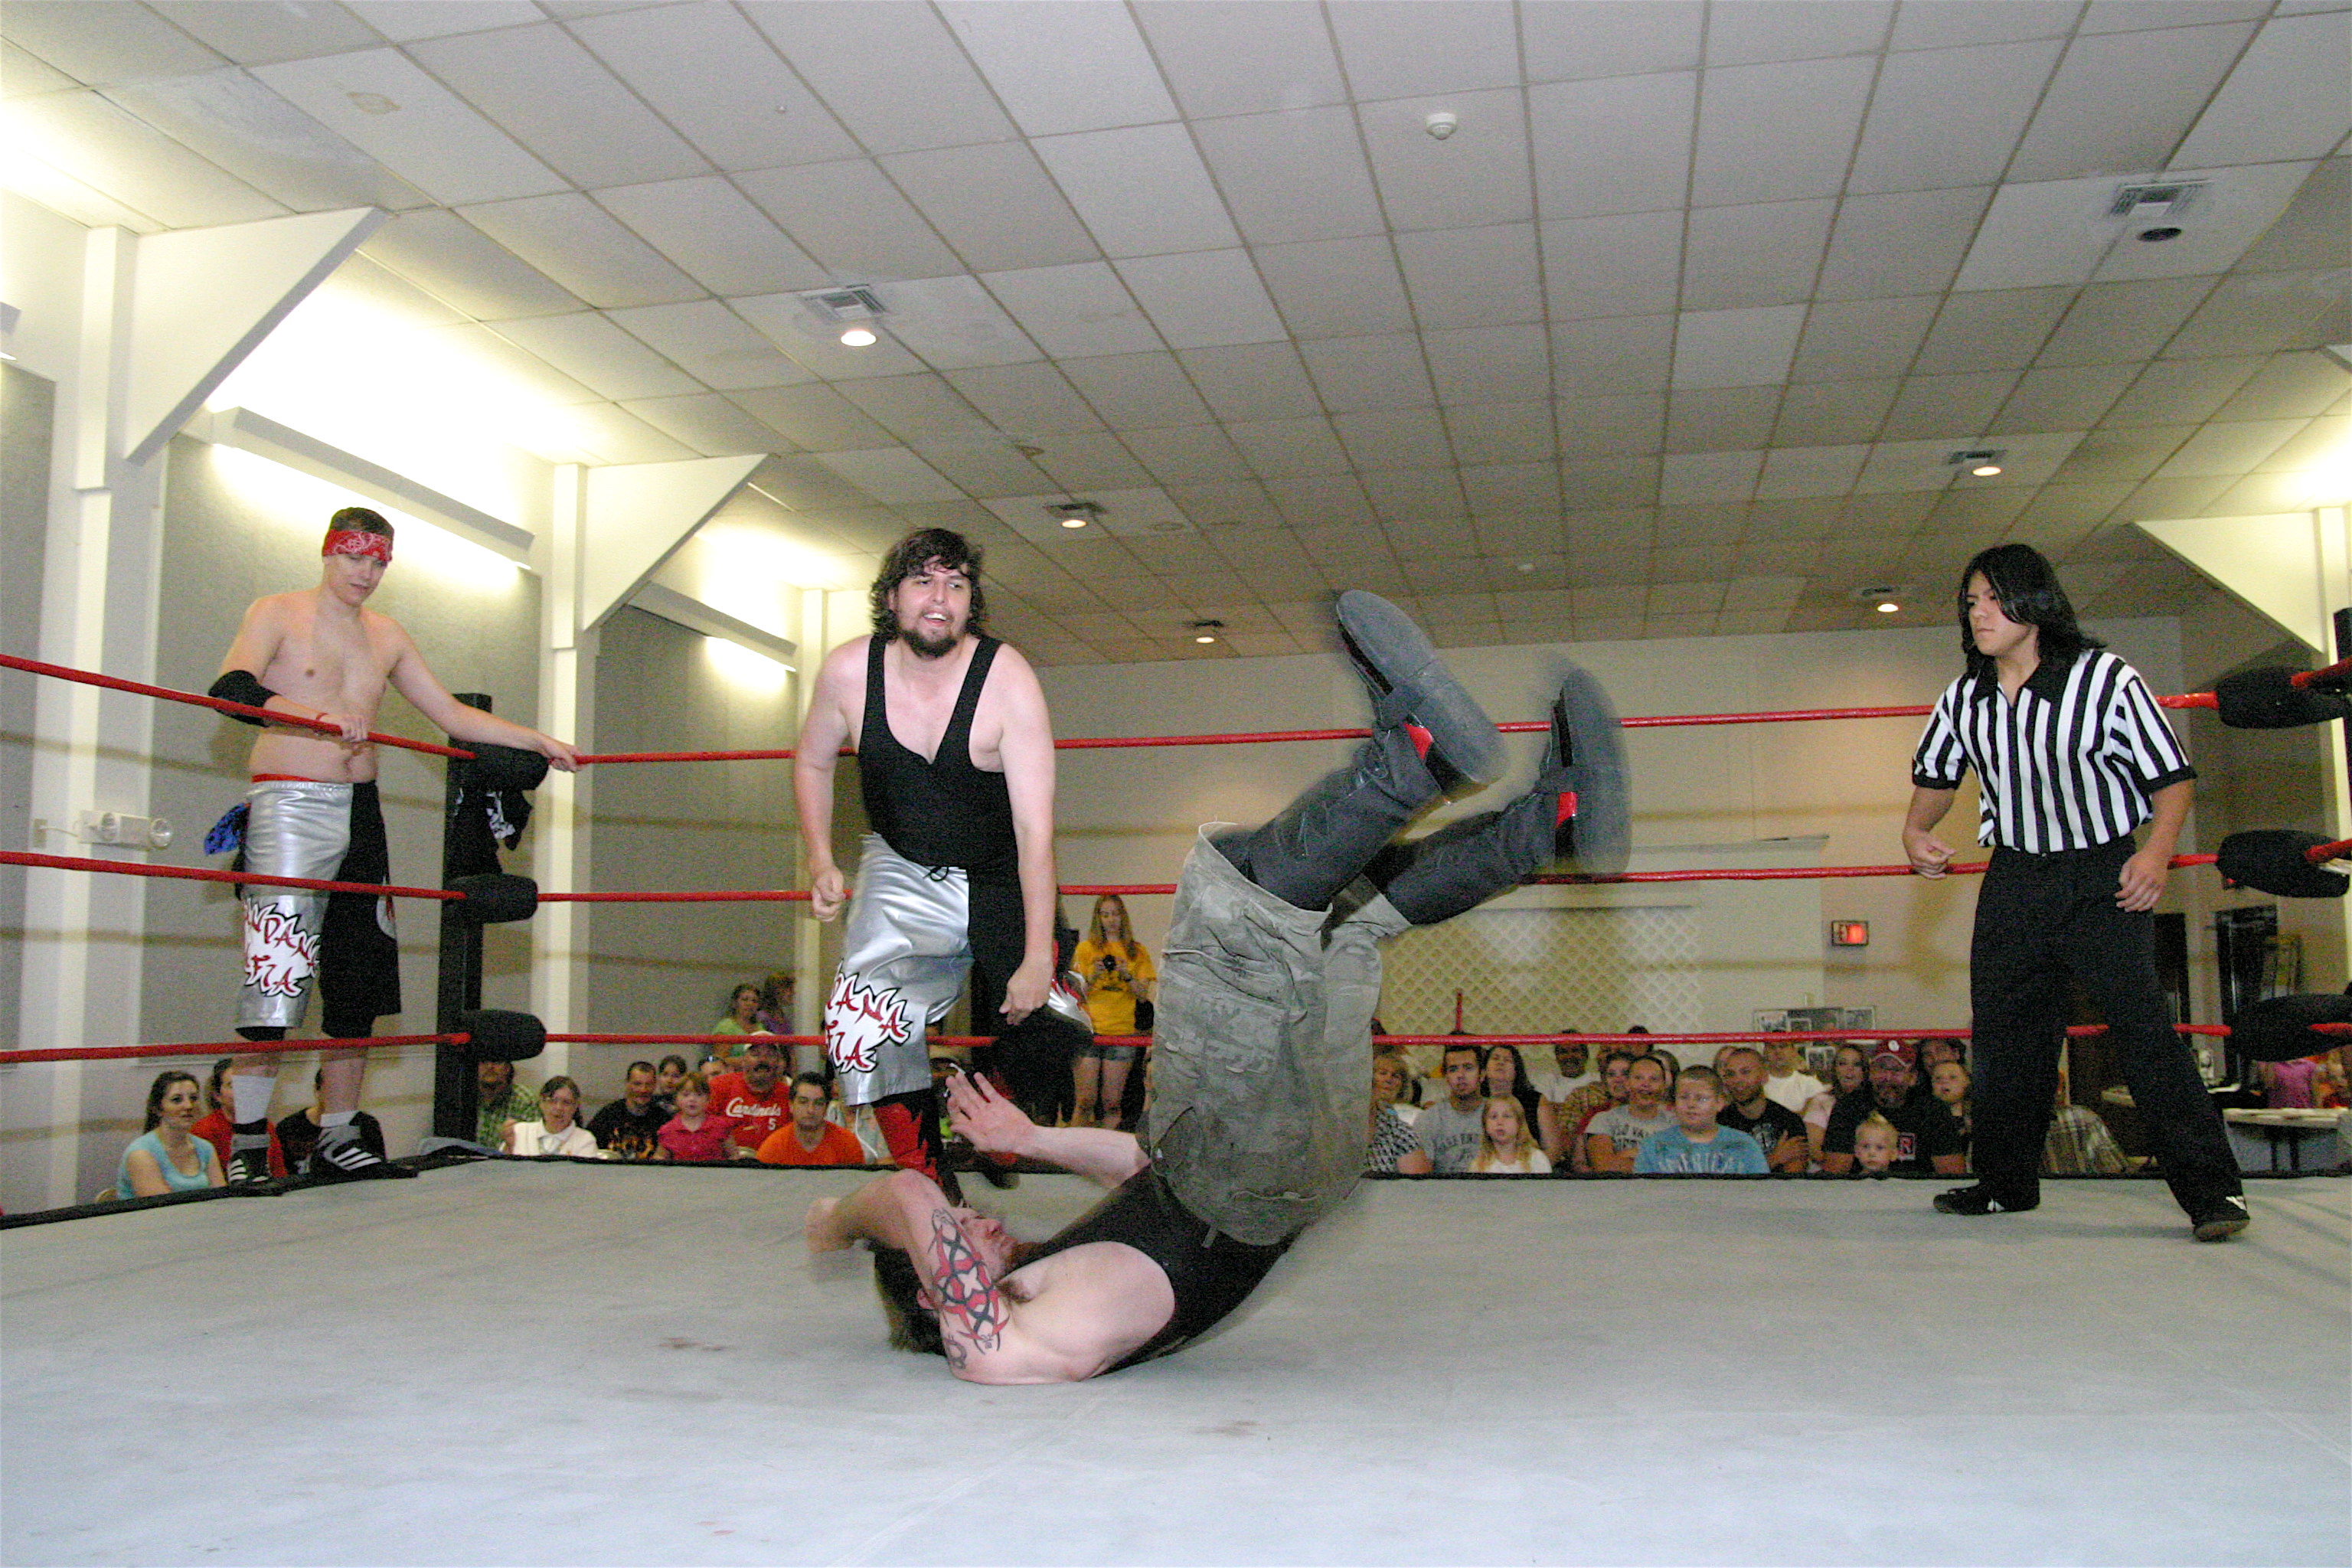 The Submission Squad improved there dominance of the Cutters on Aug 15 when they defeated the Hooligans Lil Brother Neil Diamond Cutter and his tag team partner The Blackheart in the semi final match for the HVW Tag team Titles. (Photo credit Mike Van Hoogstraat)